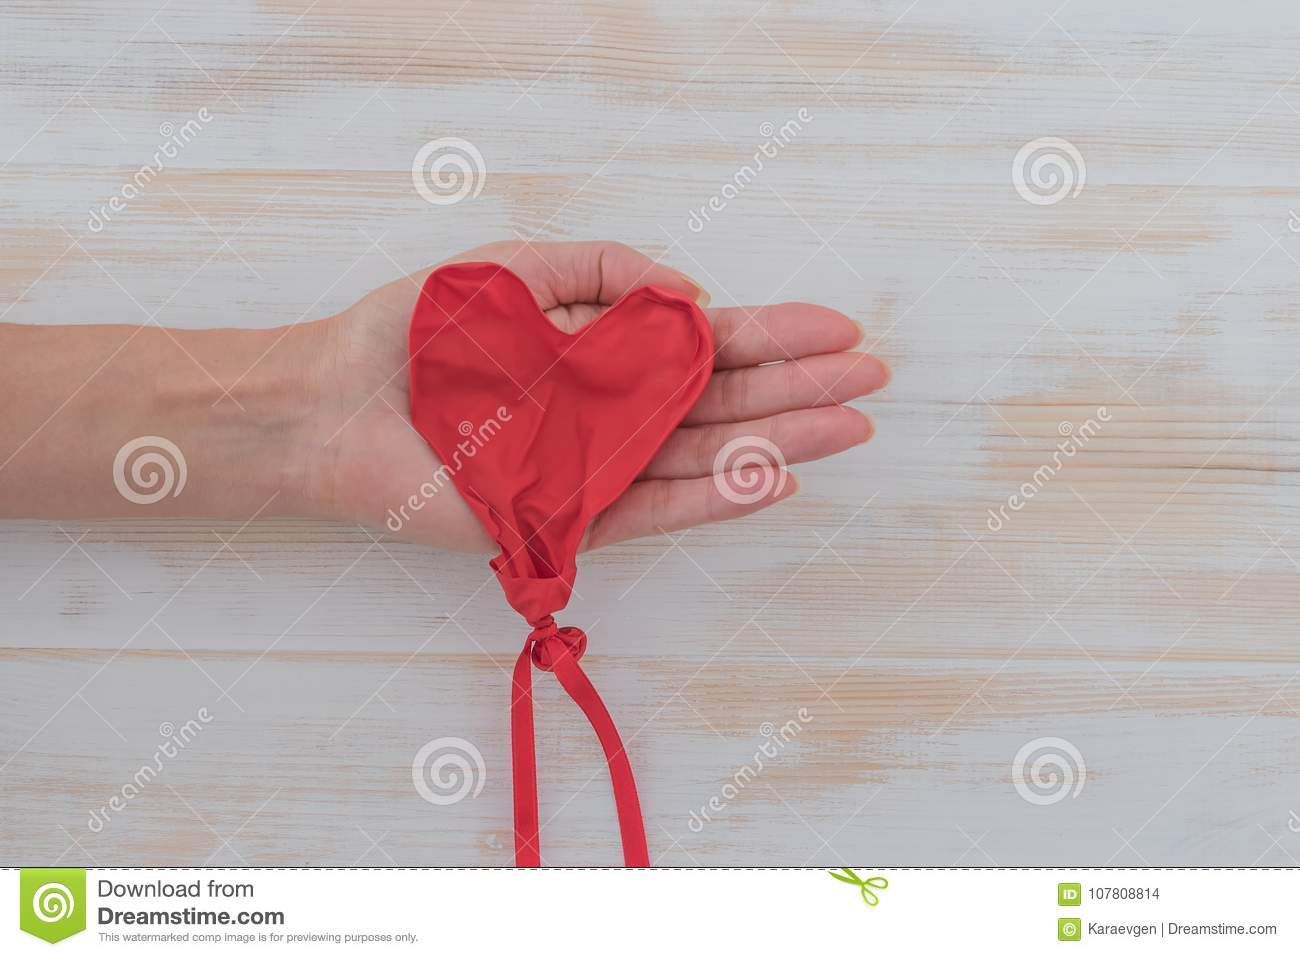 Womans hand with deflated heart shape balloon